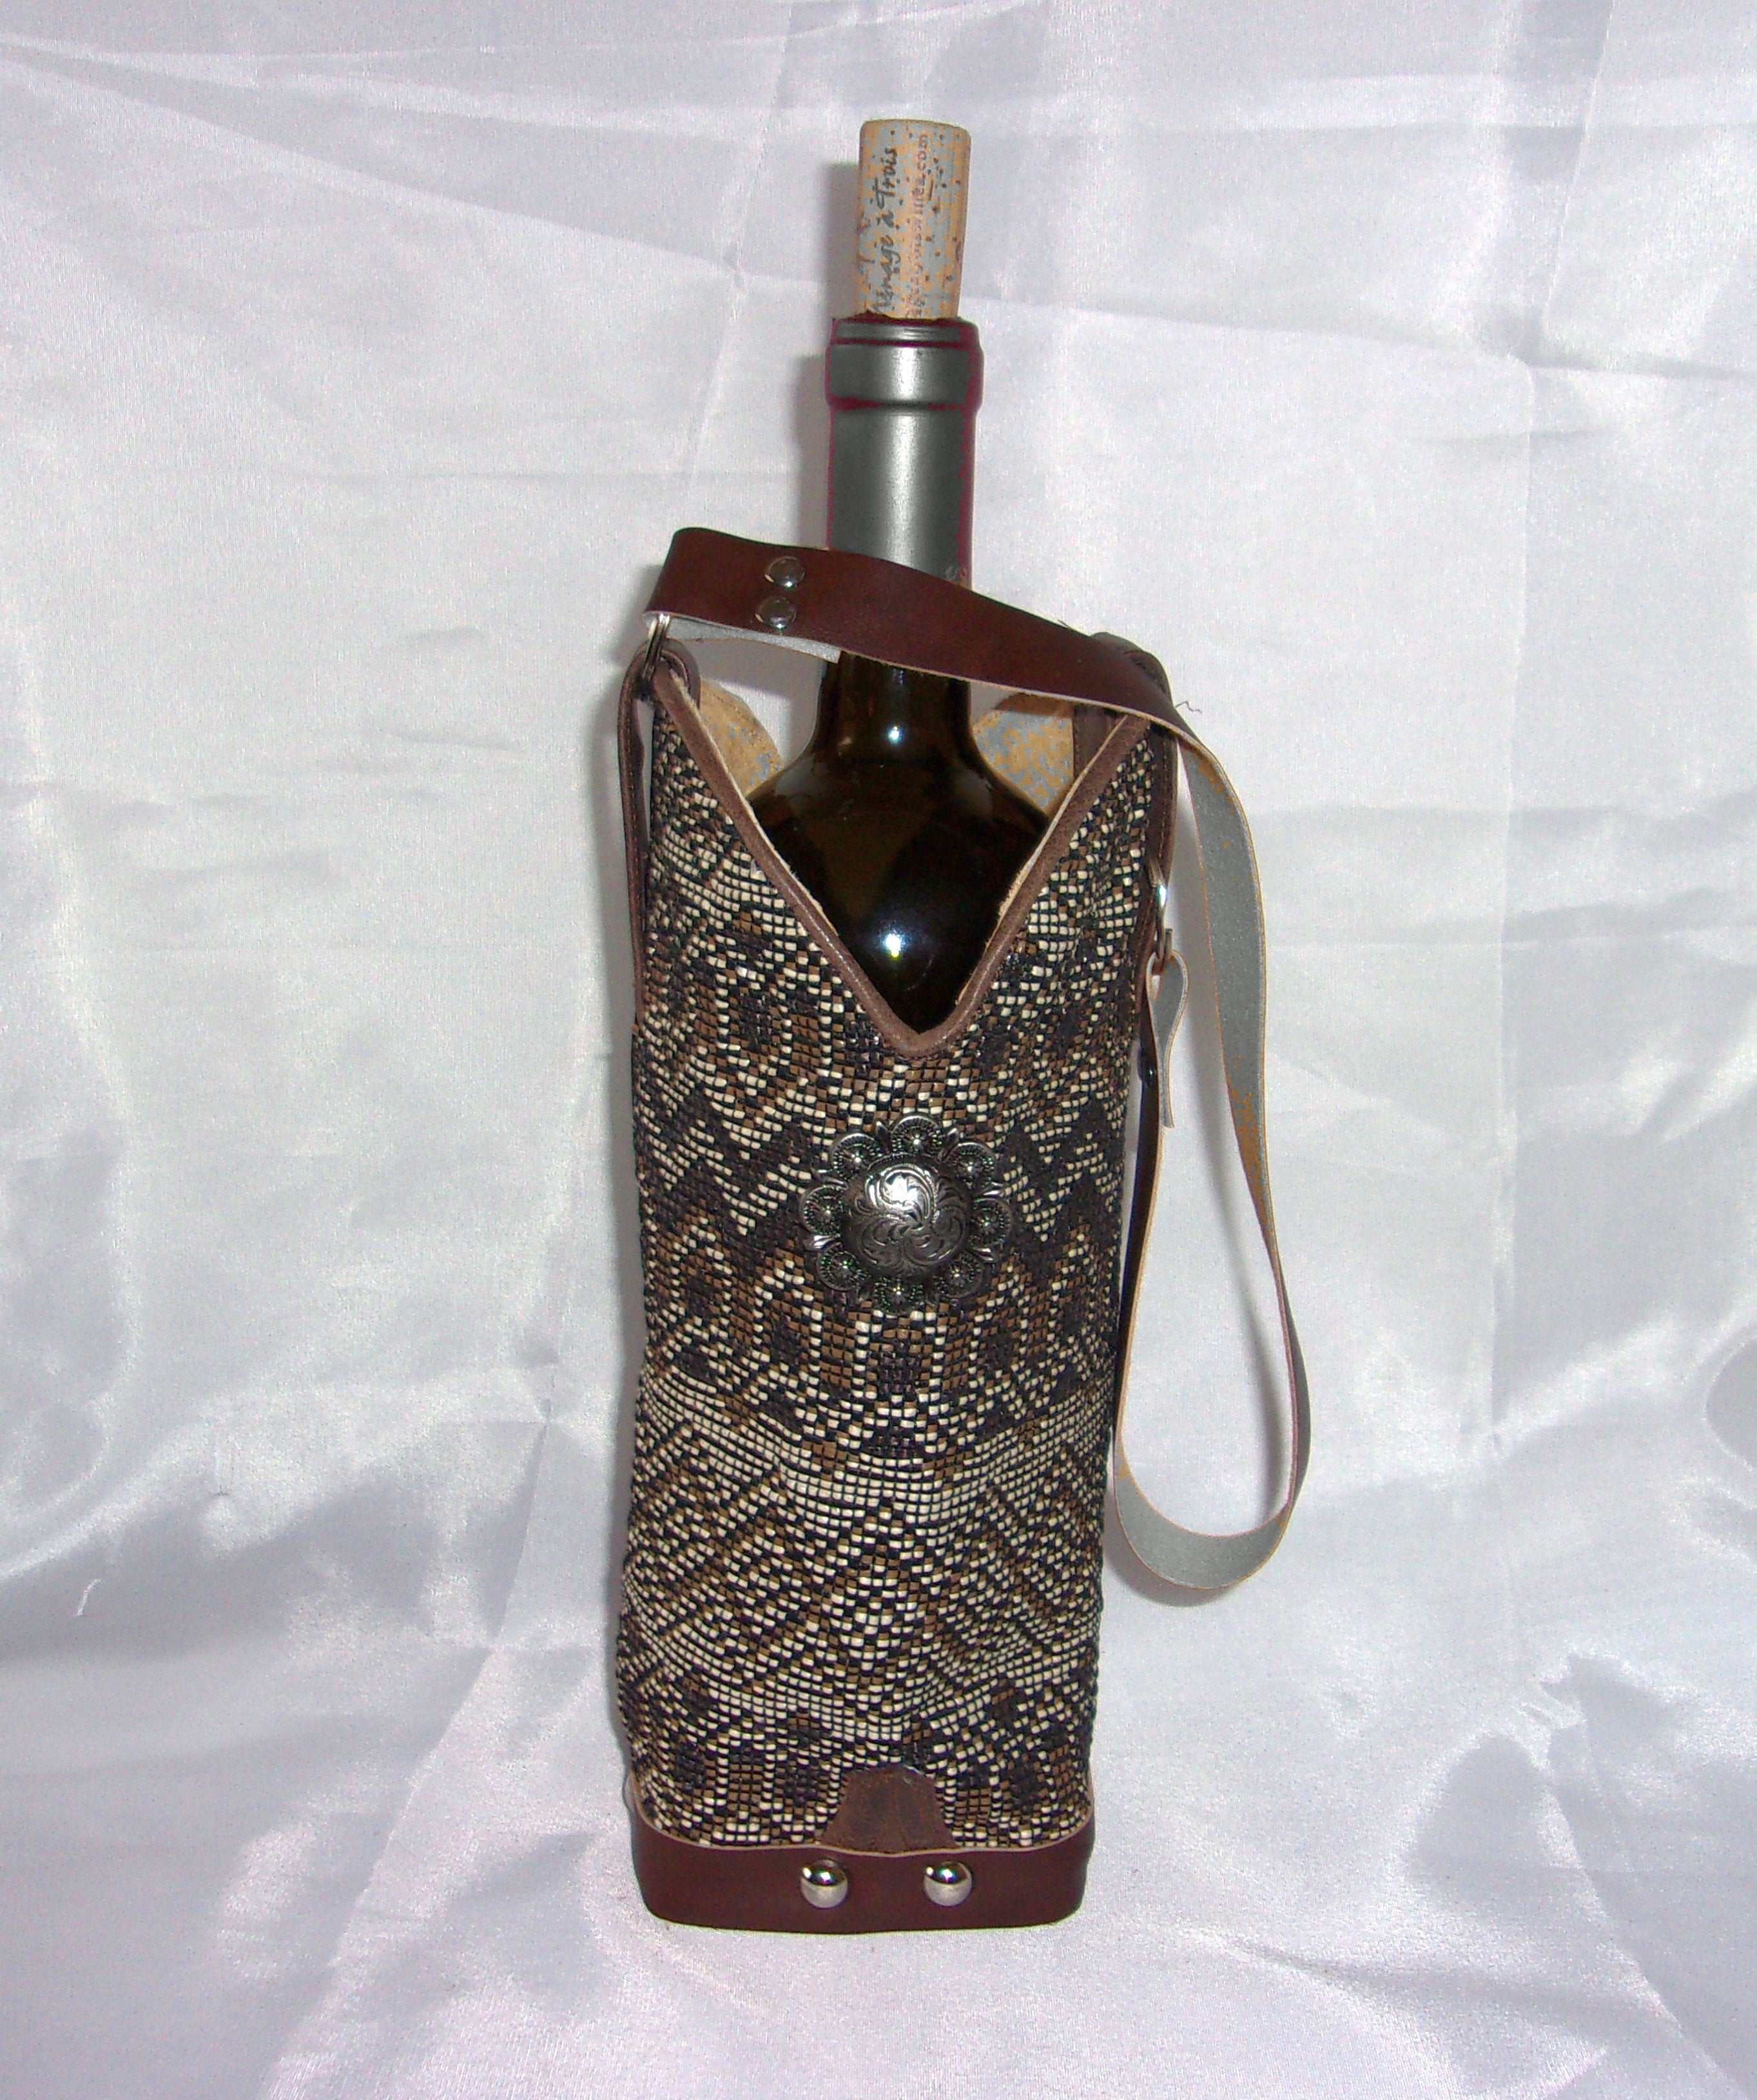 WT447 Cowboy Boot Wine Tote - Unique Leather Handbags and Totes by Chris Thompson